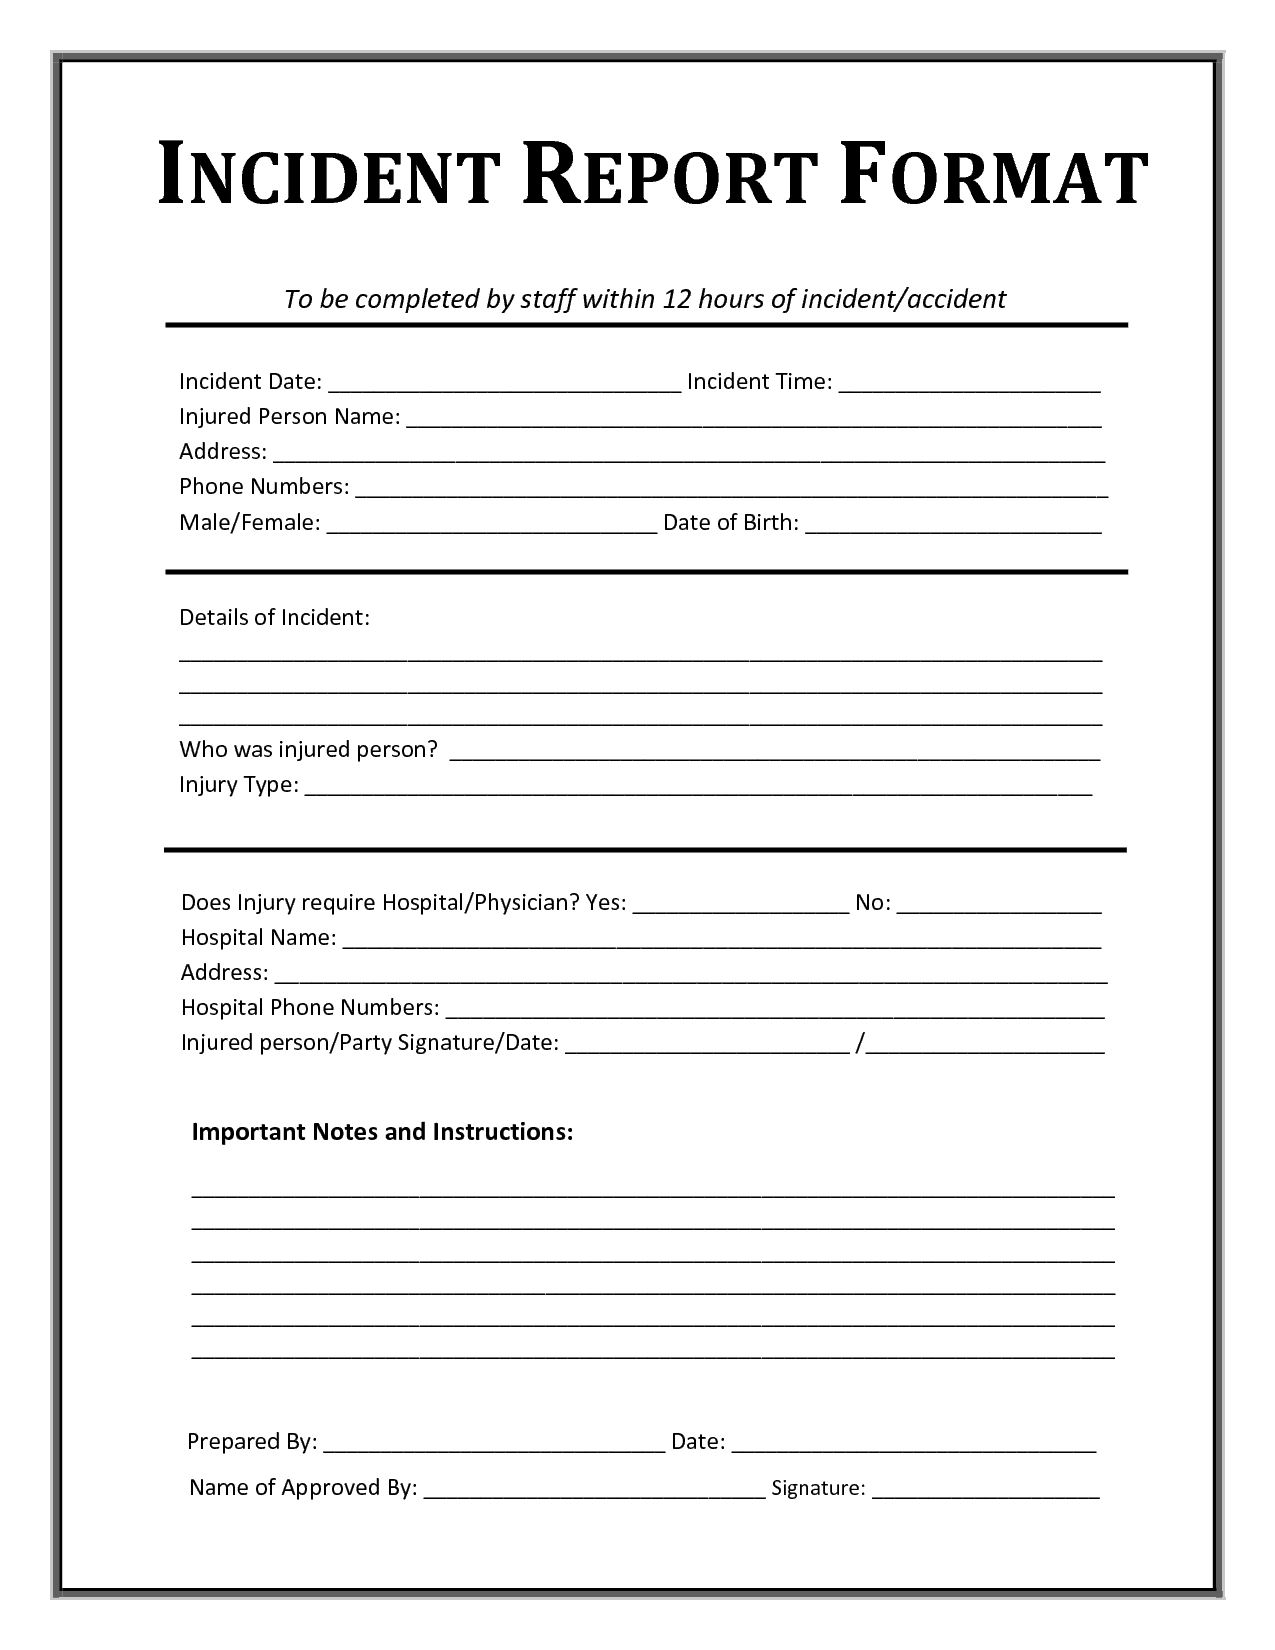 incident report word template - Yeni.mescale.co